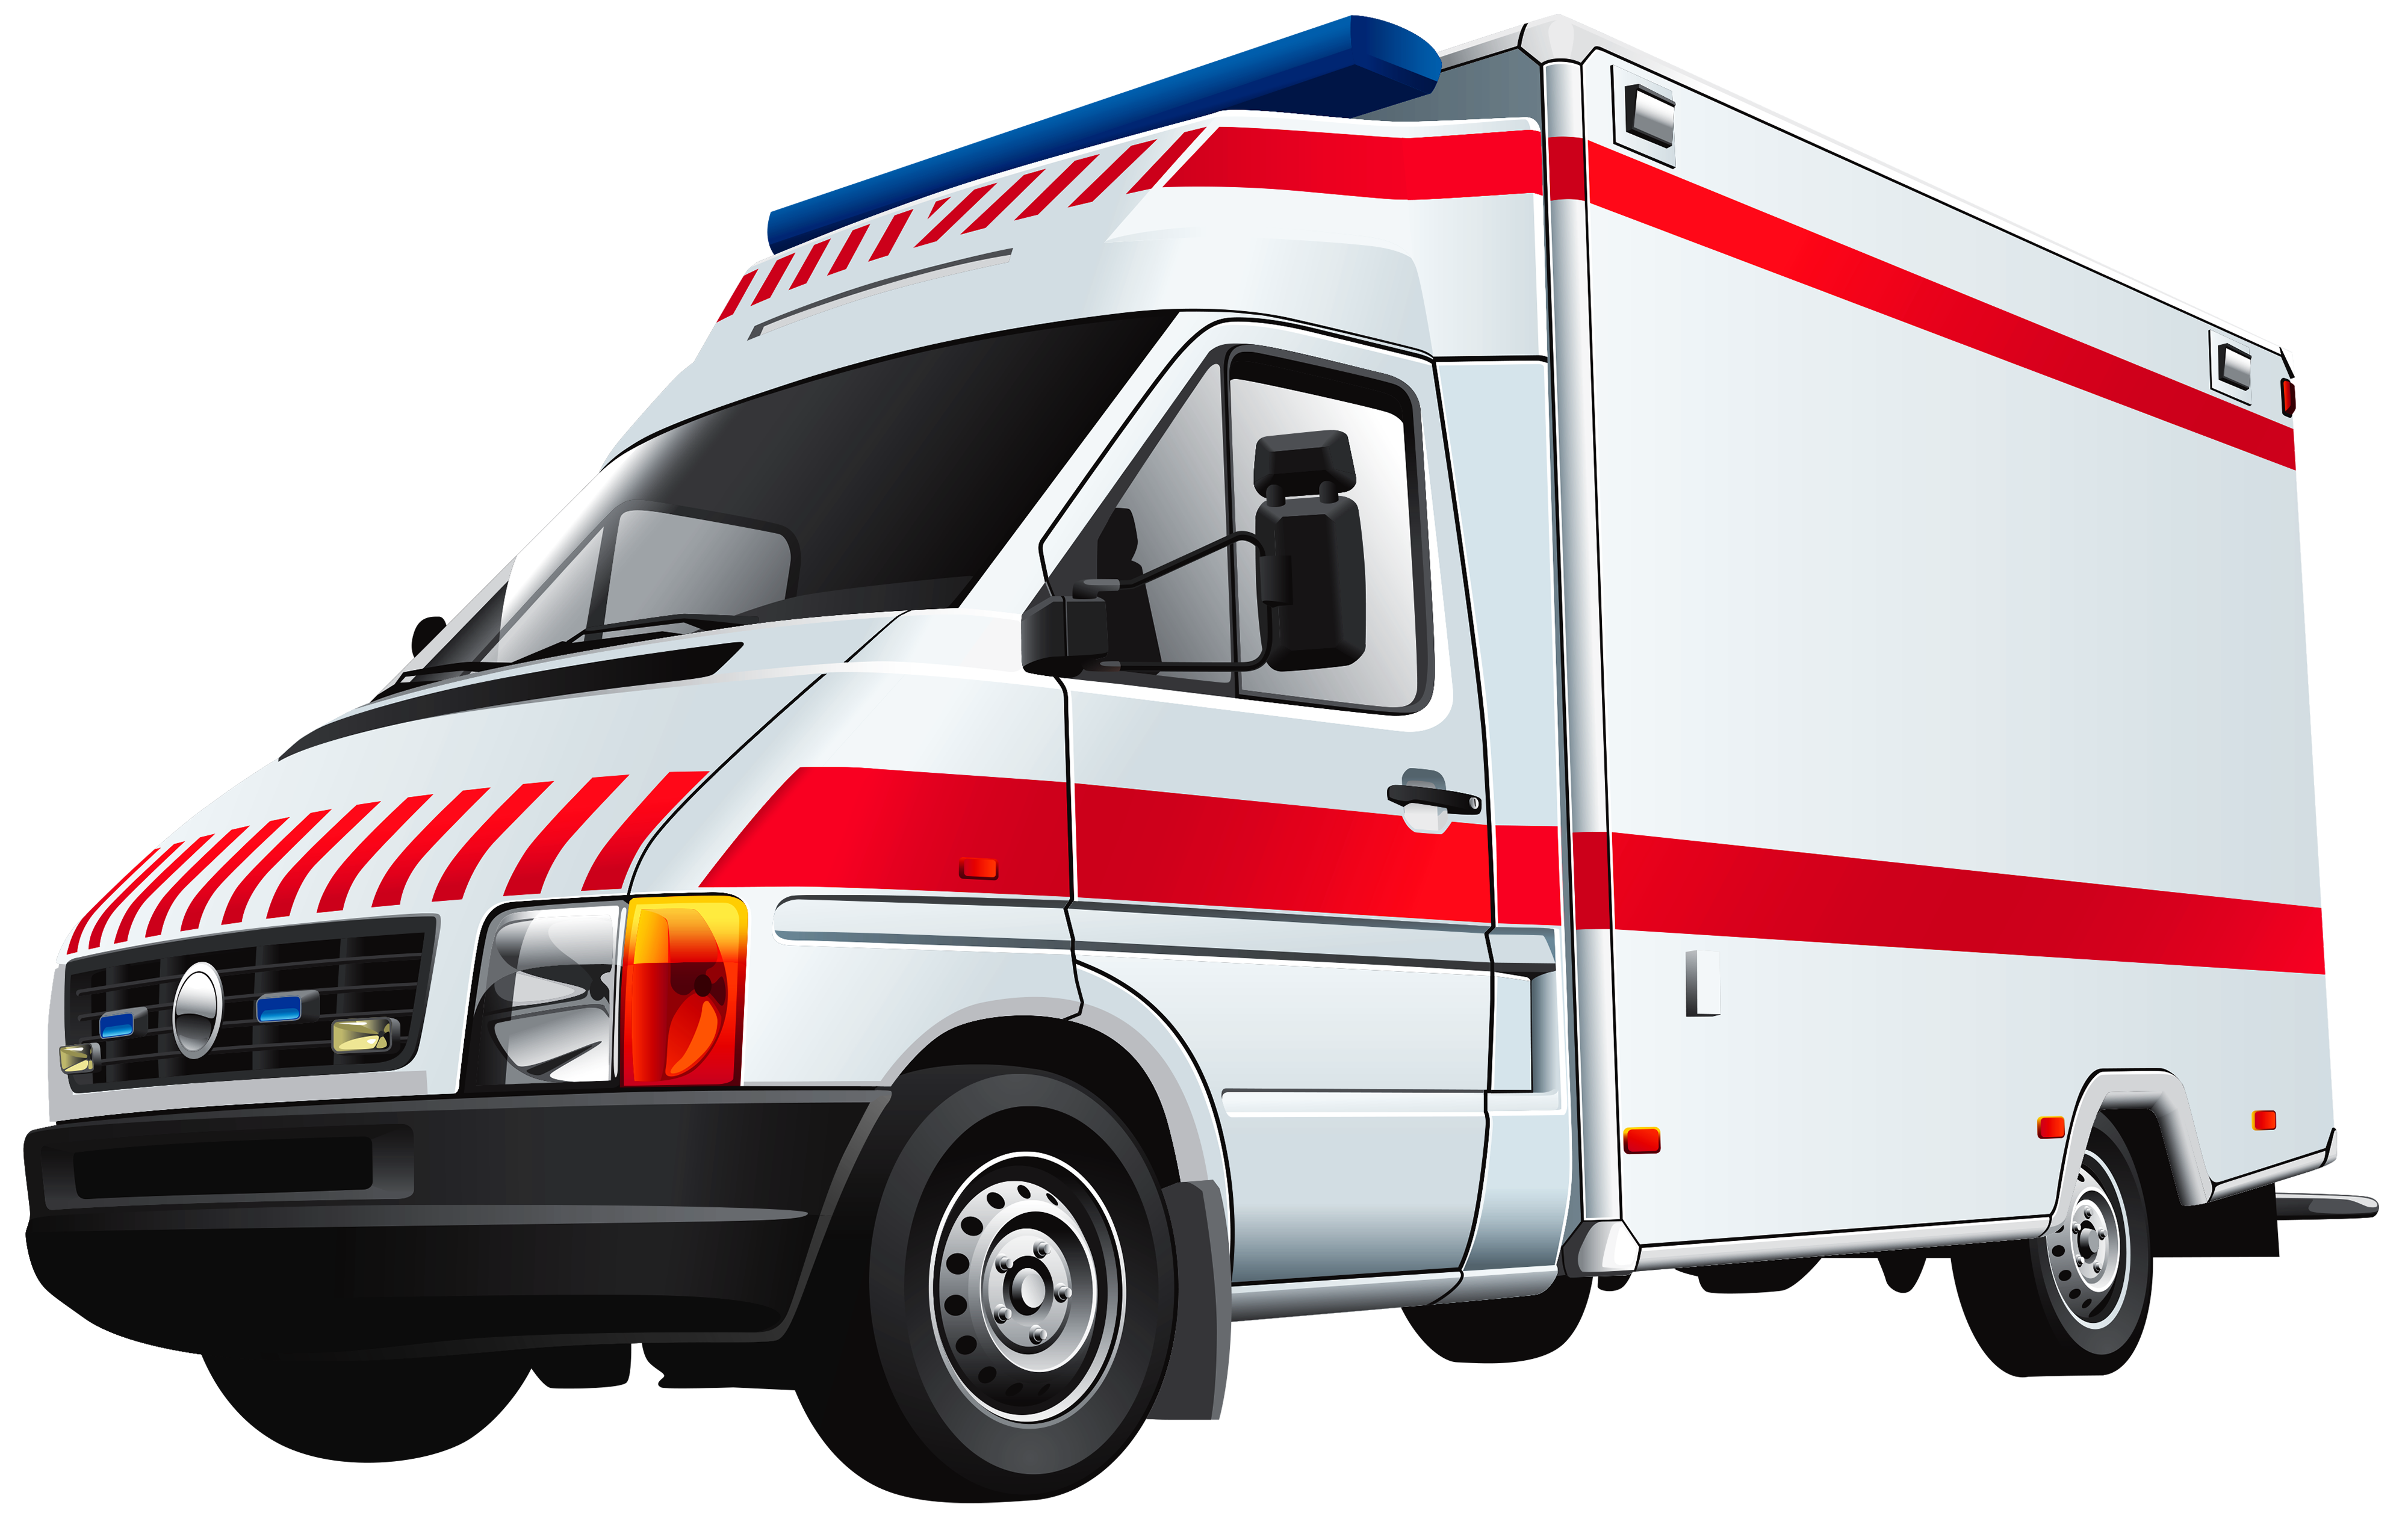 Van clipart medical. Ambulance png clip art